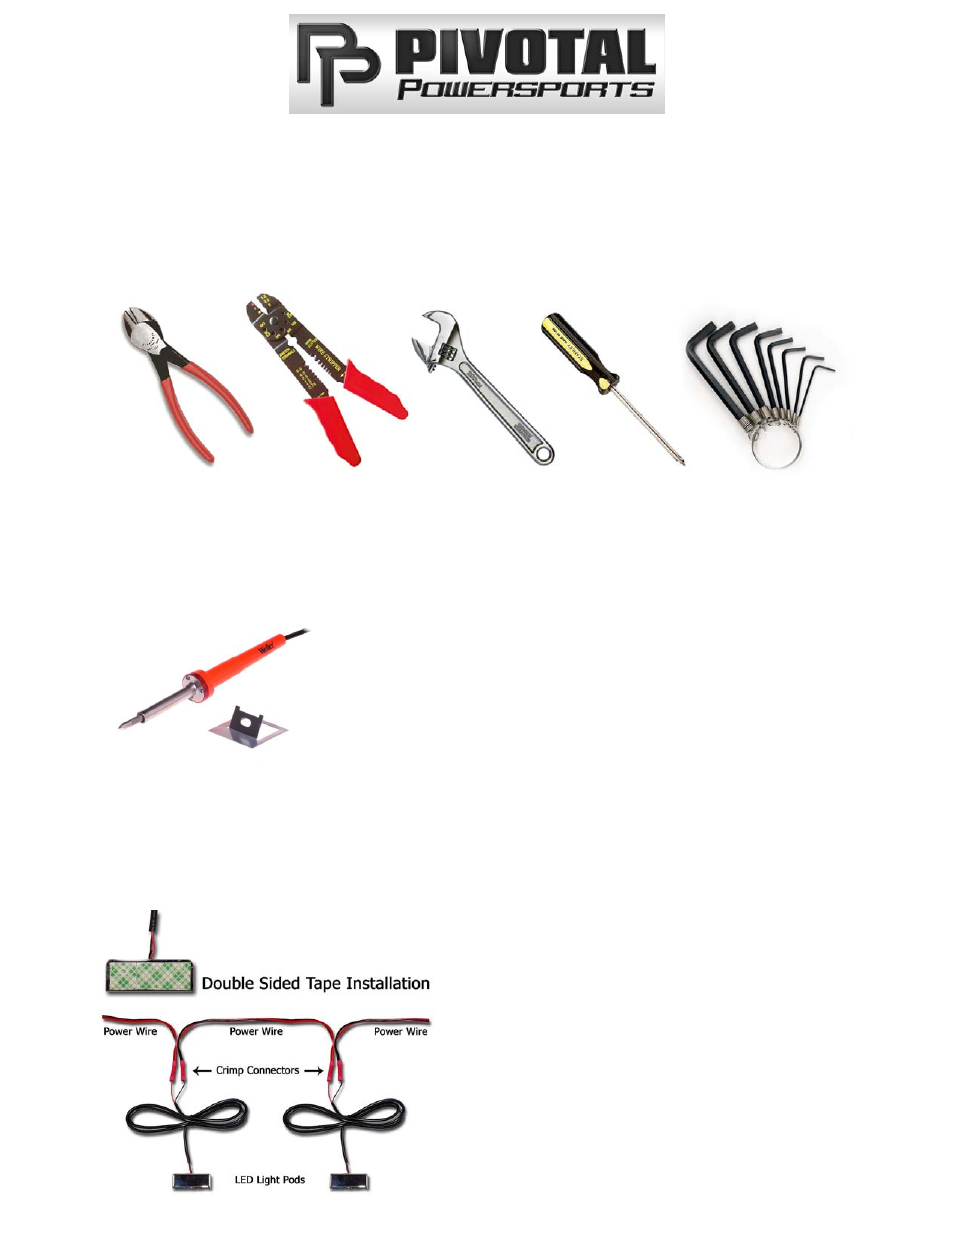 Pivotal Powersports LED Lighting Kit User Manual | 2 pages